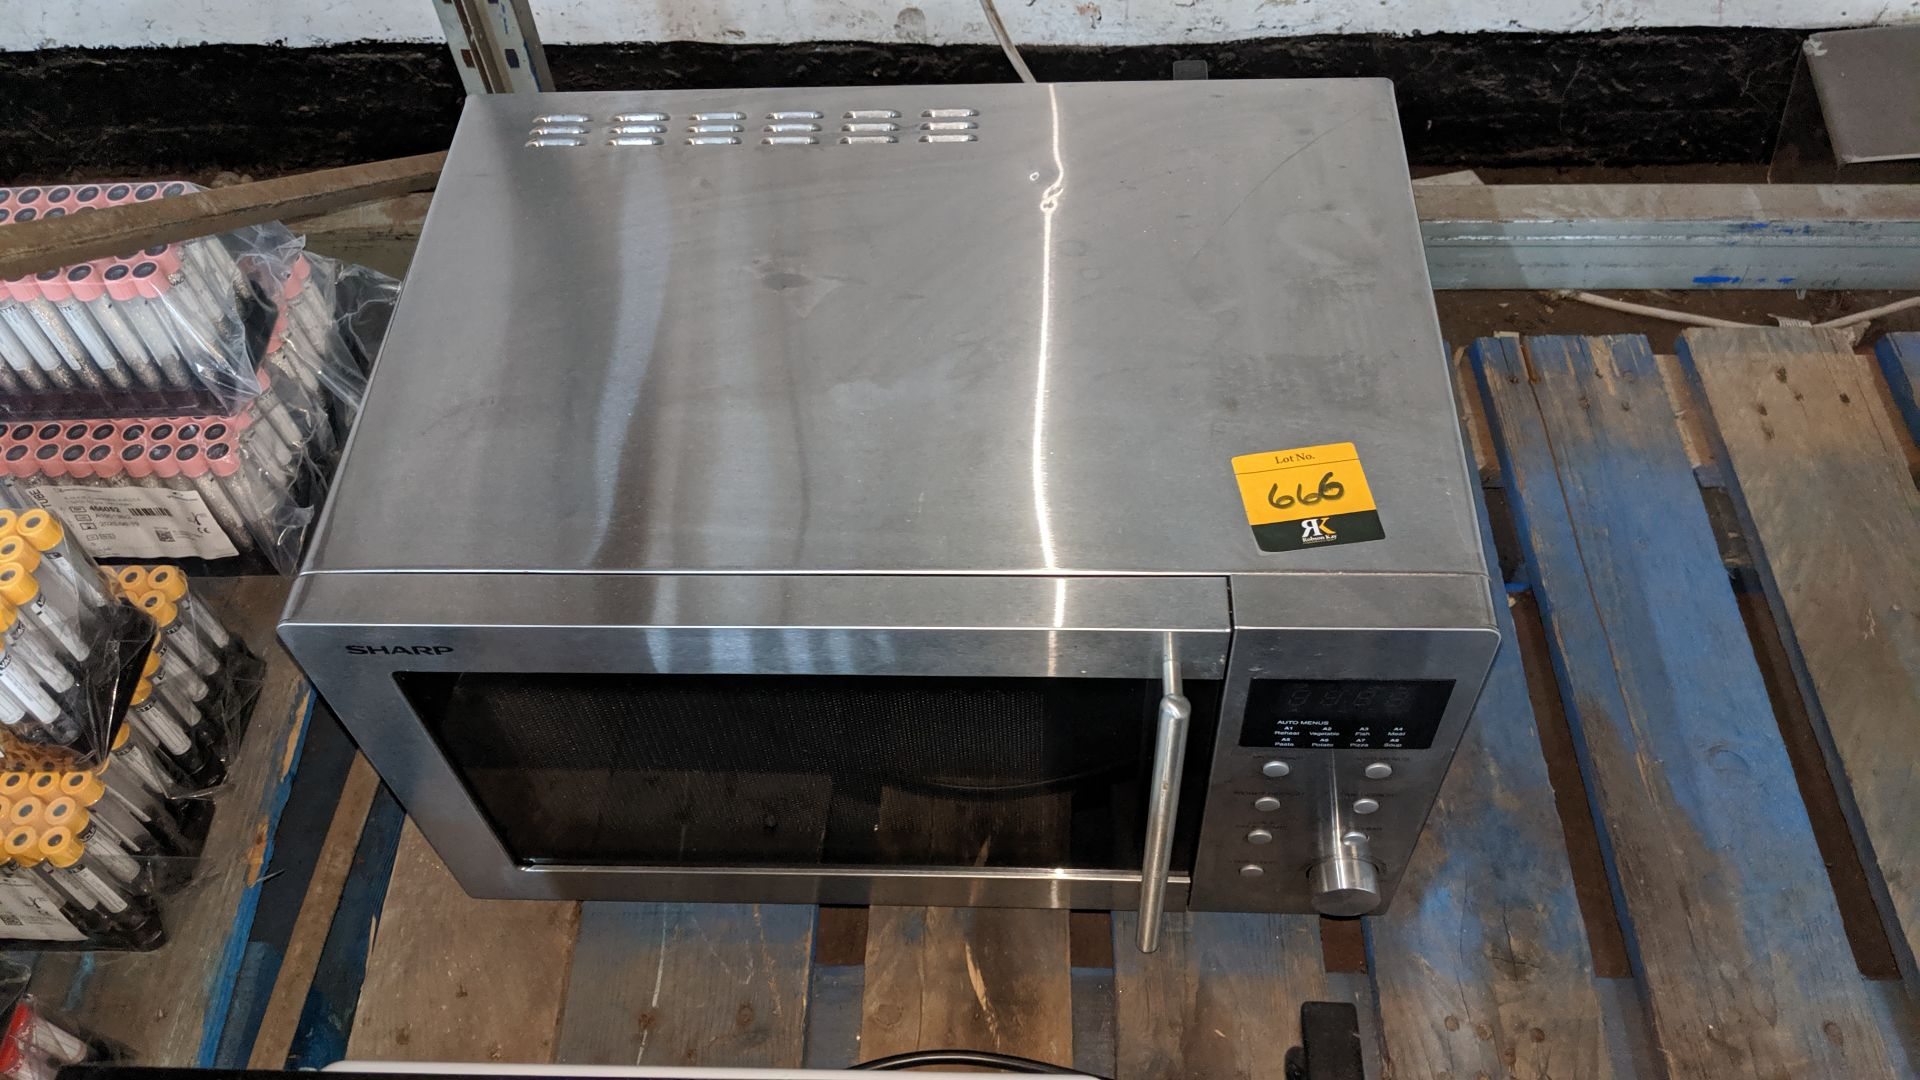 Lot 666 - Sharp stainless steel microwave. This is one of a large number of lots used/owned by One To One (